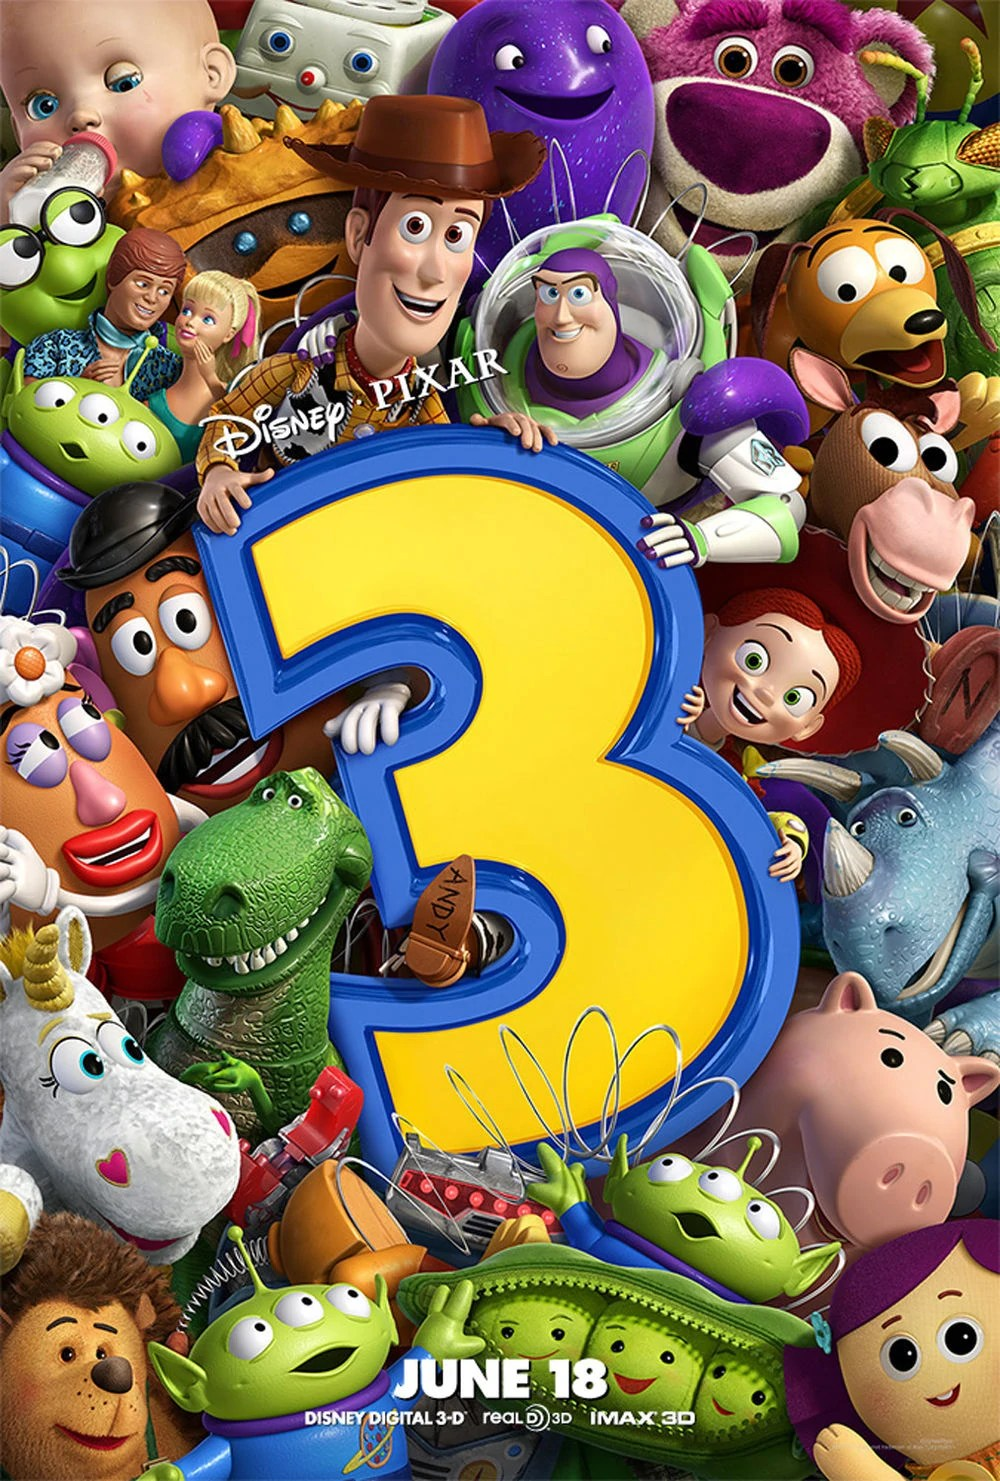 Toy Story 3 Pixar Wiki FANDOM powered by Wikia